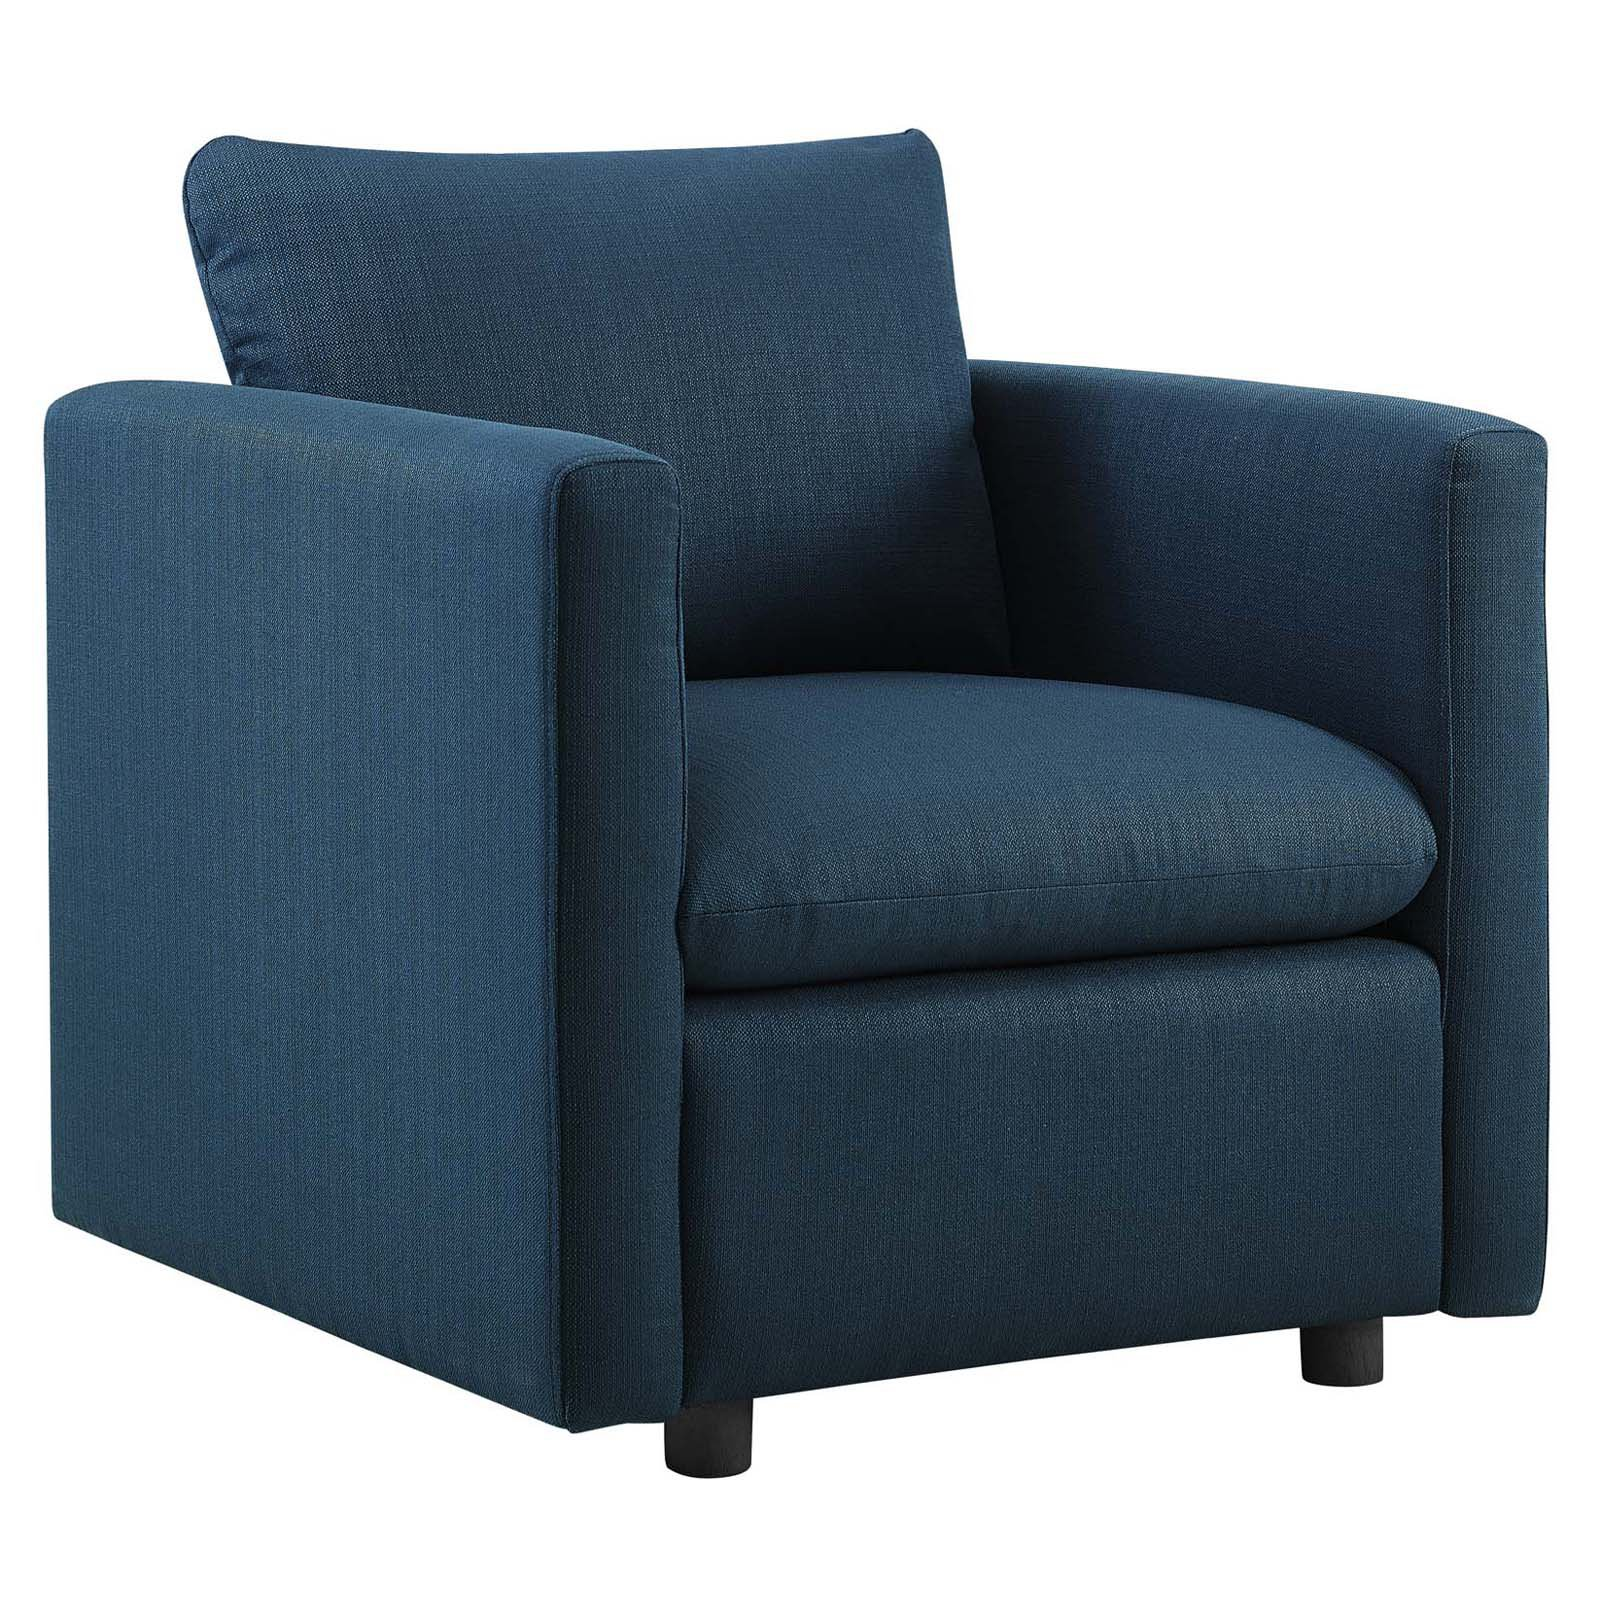 Modway Activate Upholstered Fabric Armchair